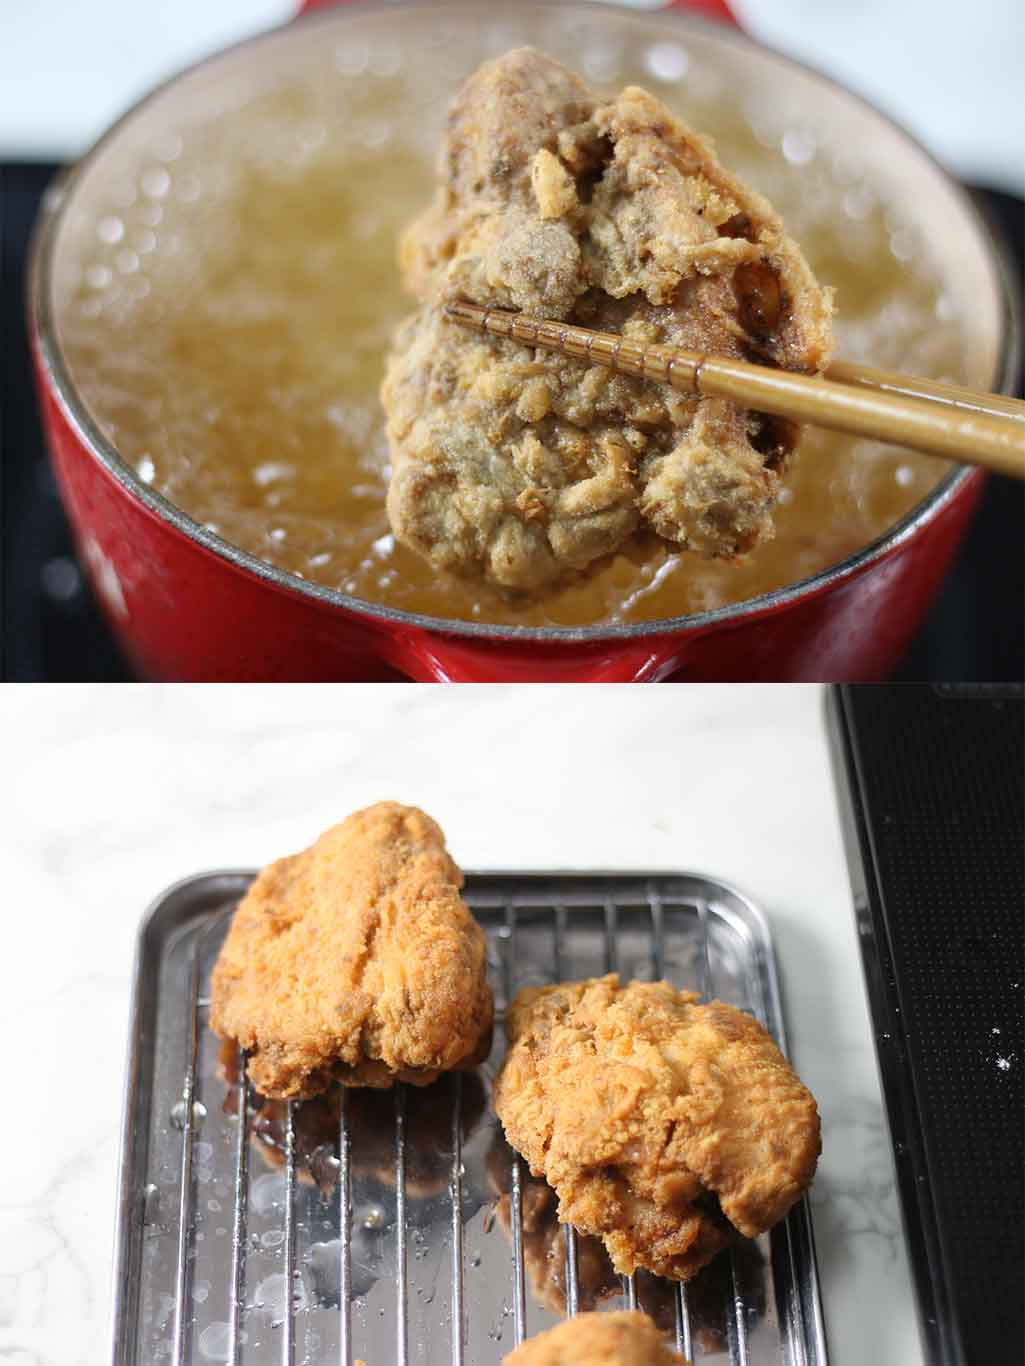 Deep fry your healthy crispy fried chicken in lard until ready.